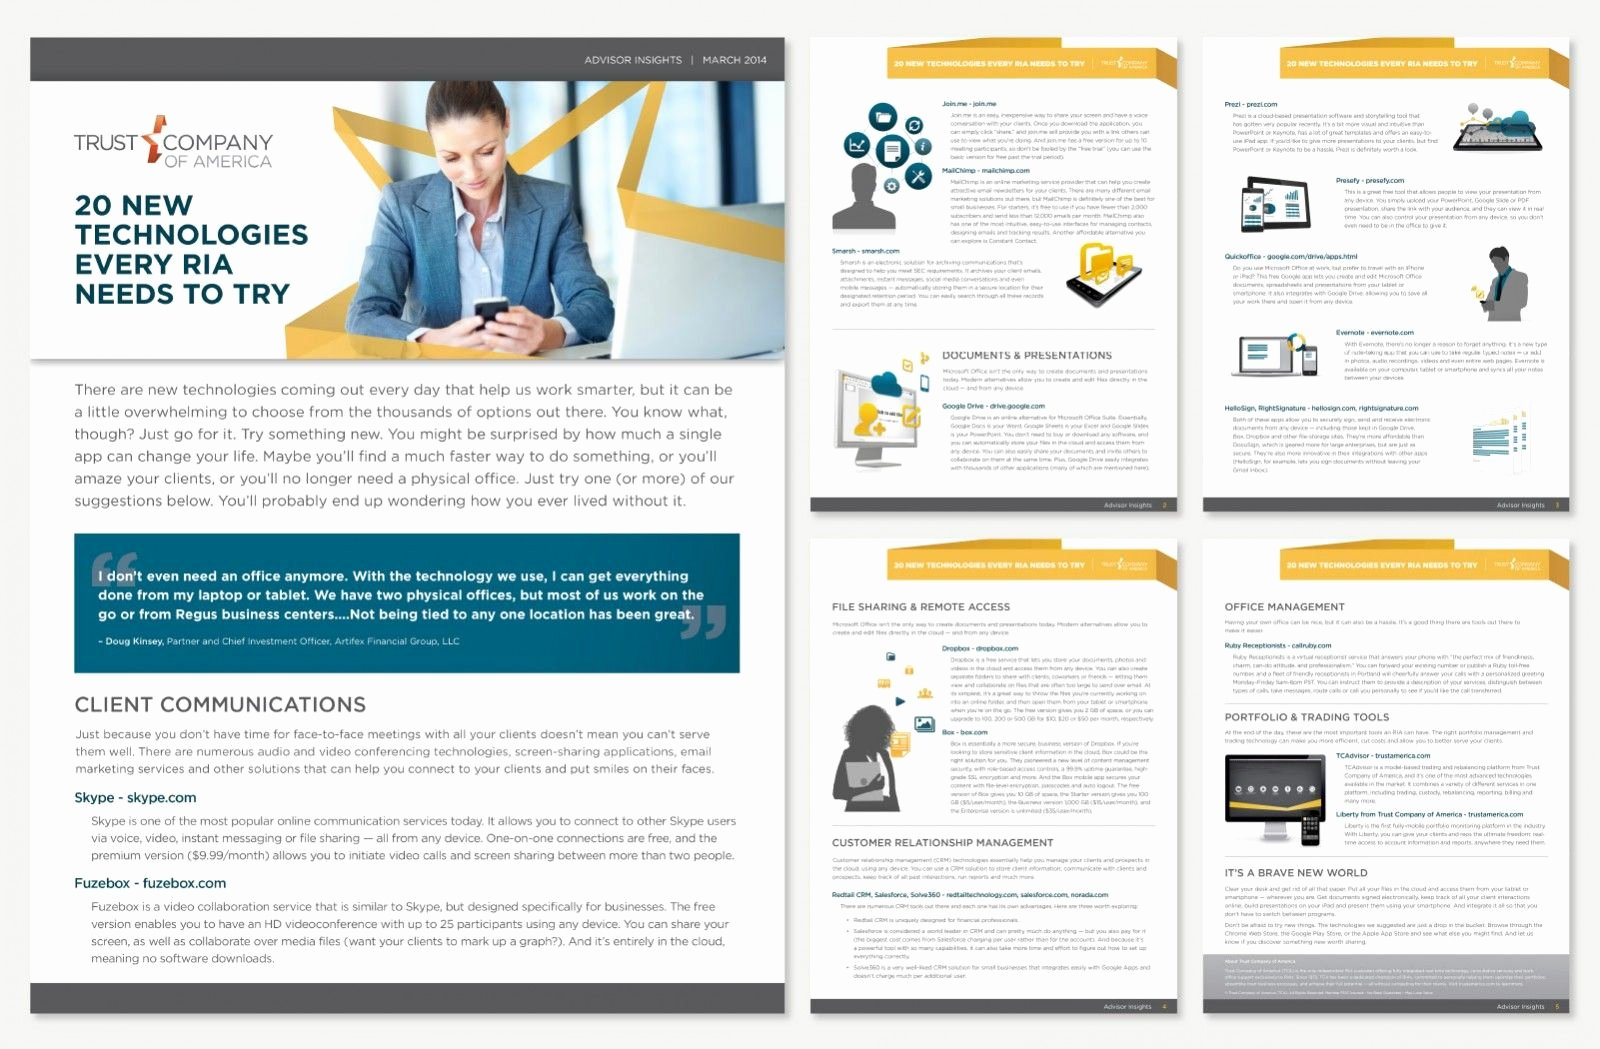 White Paper Design Template Beautiful Trust Branded White Paper On the Virtual Work Environment Promoted Via Email Site Banners